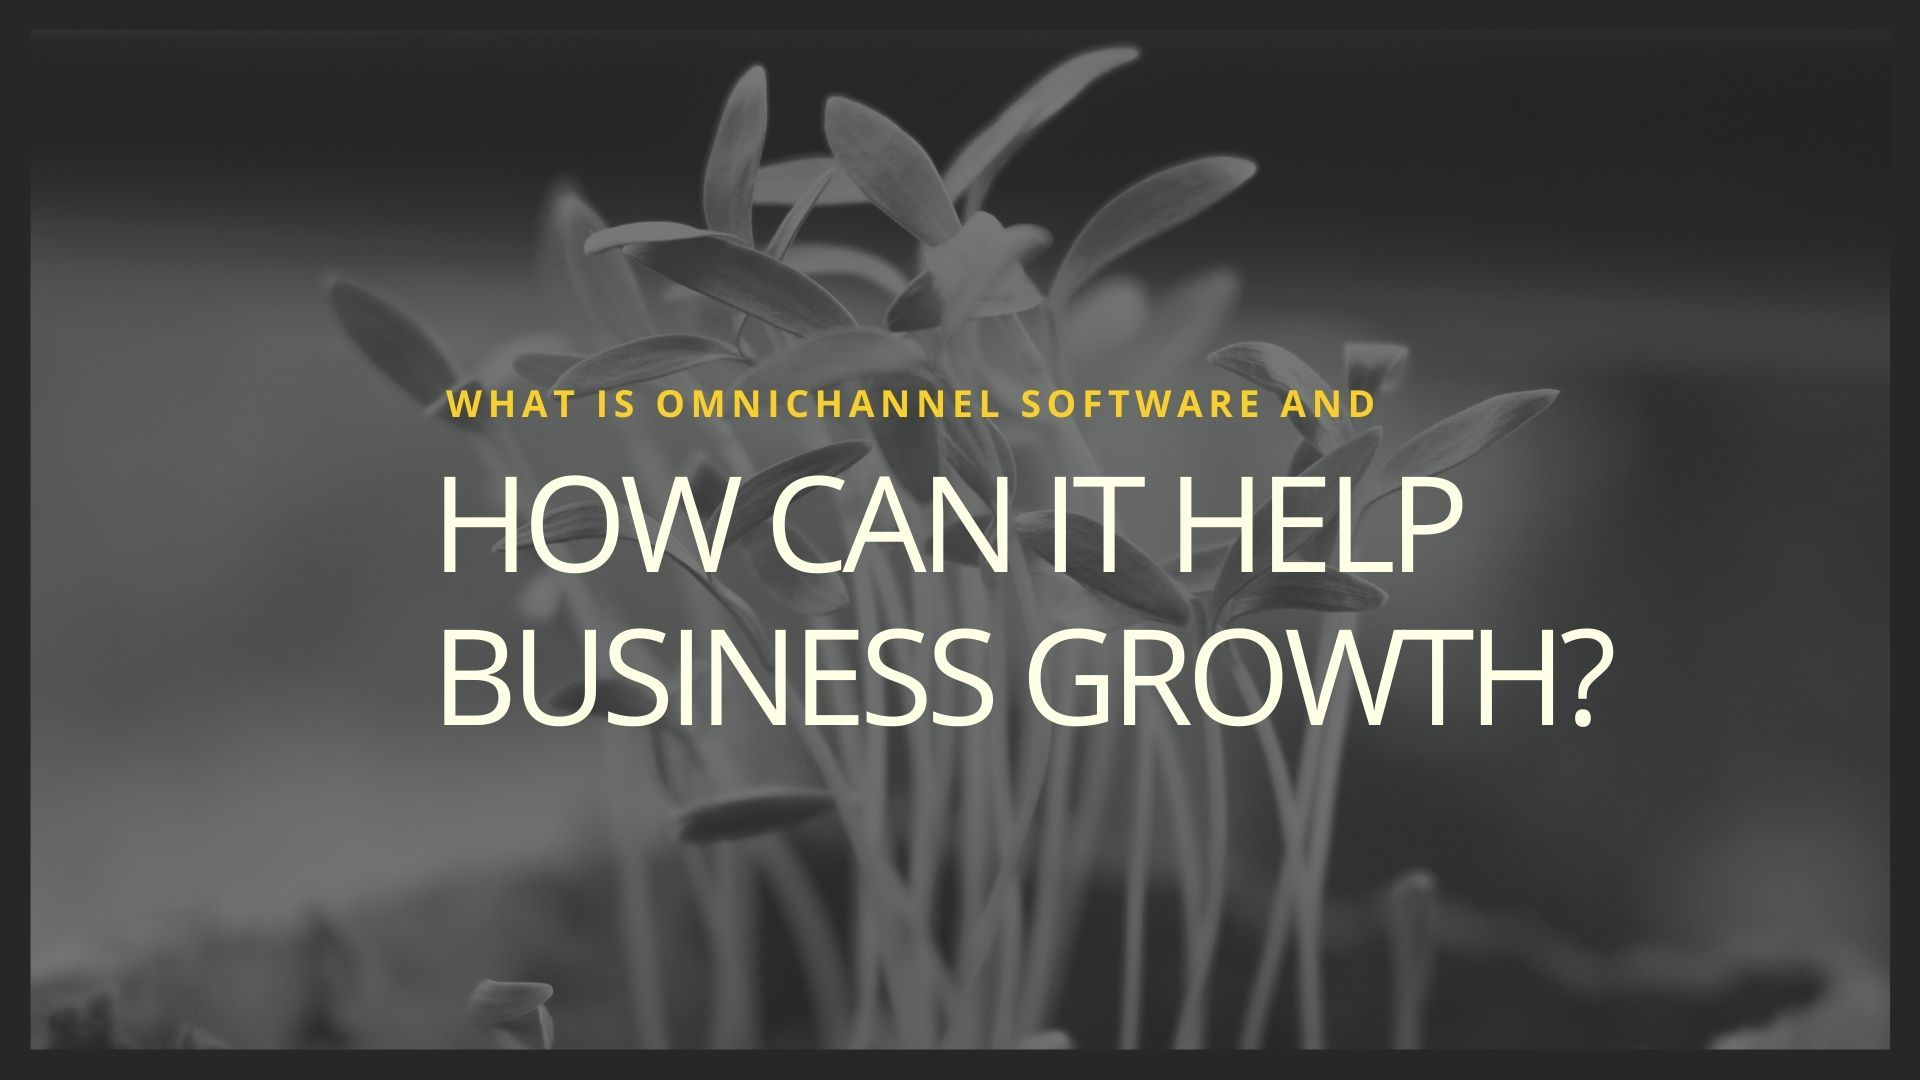 What is Omnichannel Software and How Can It Help Businesses Grow?